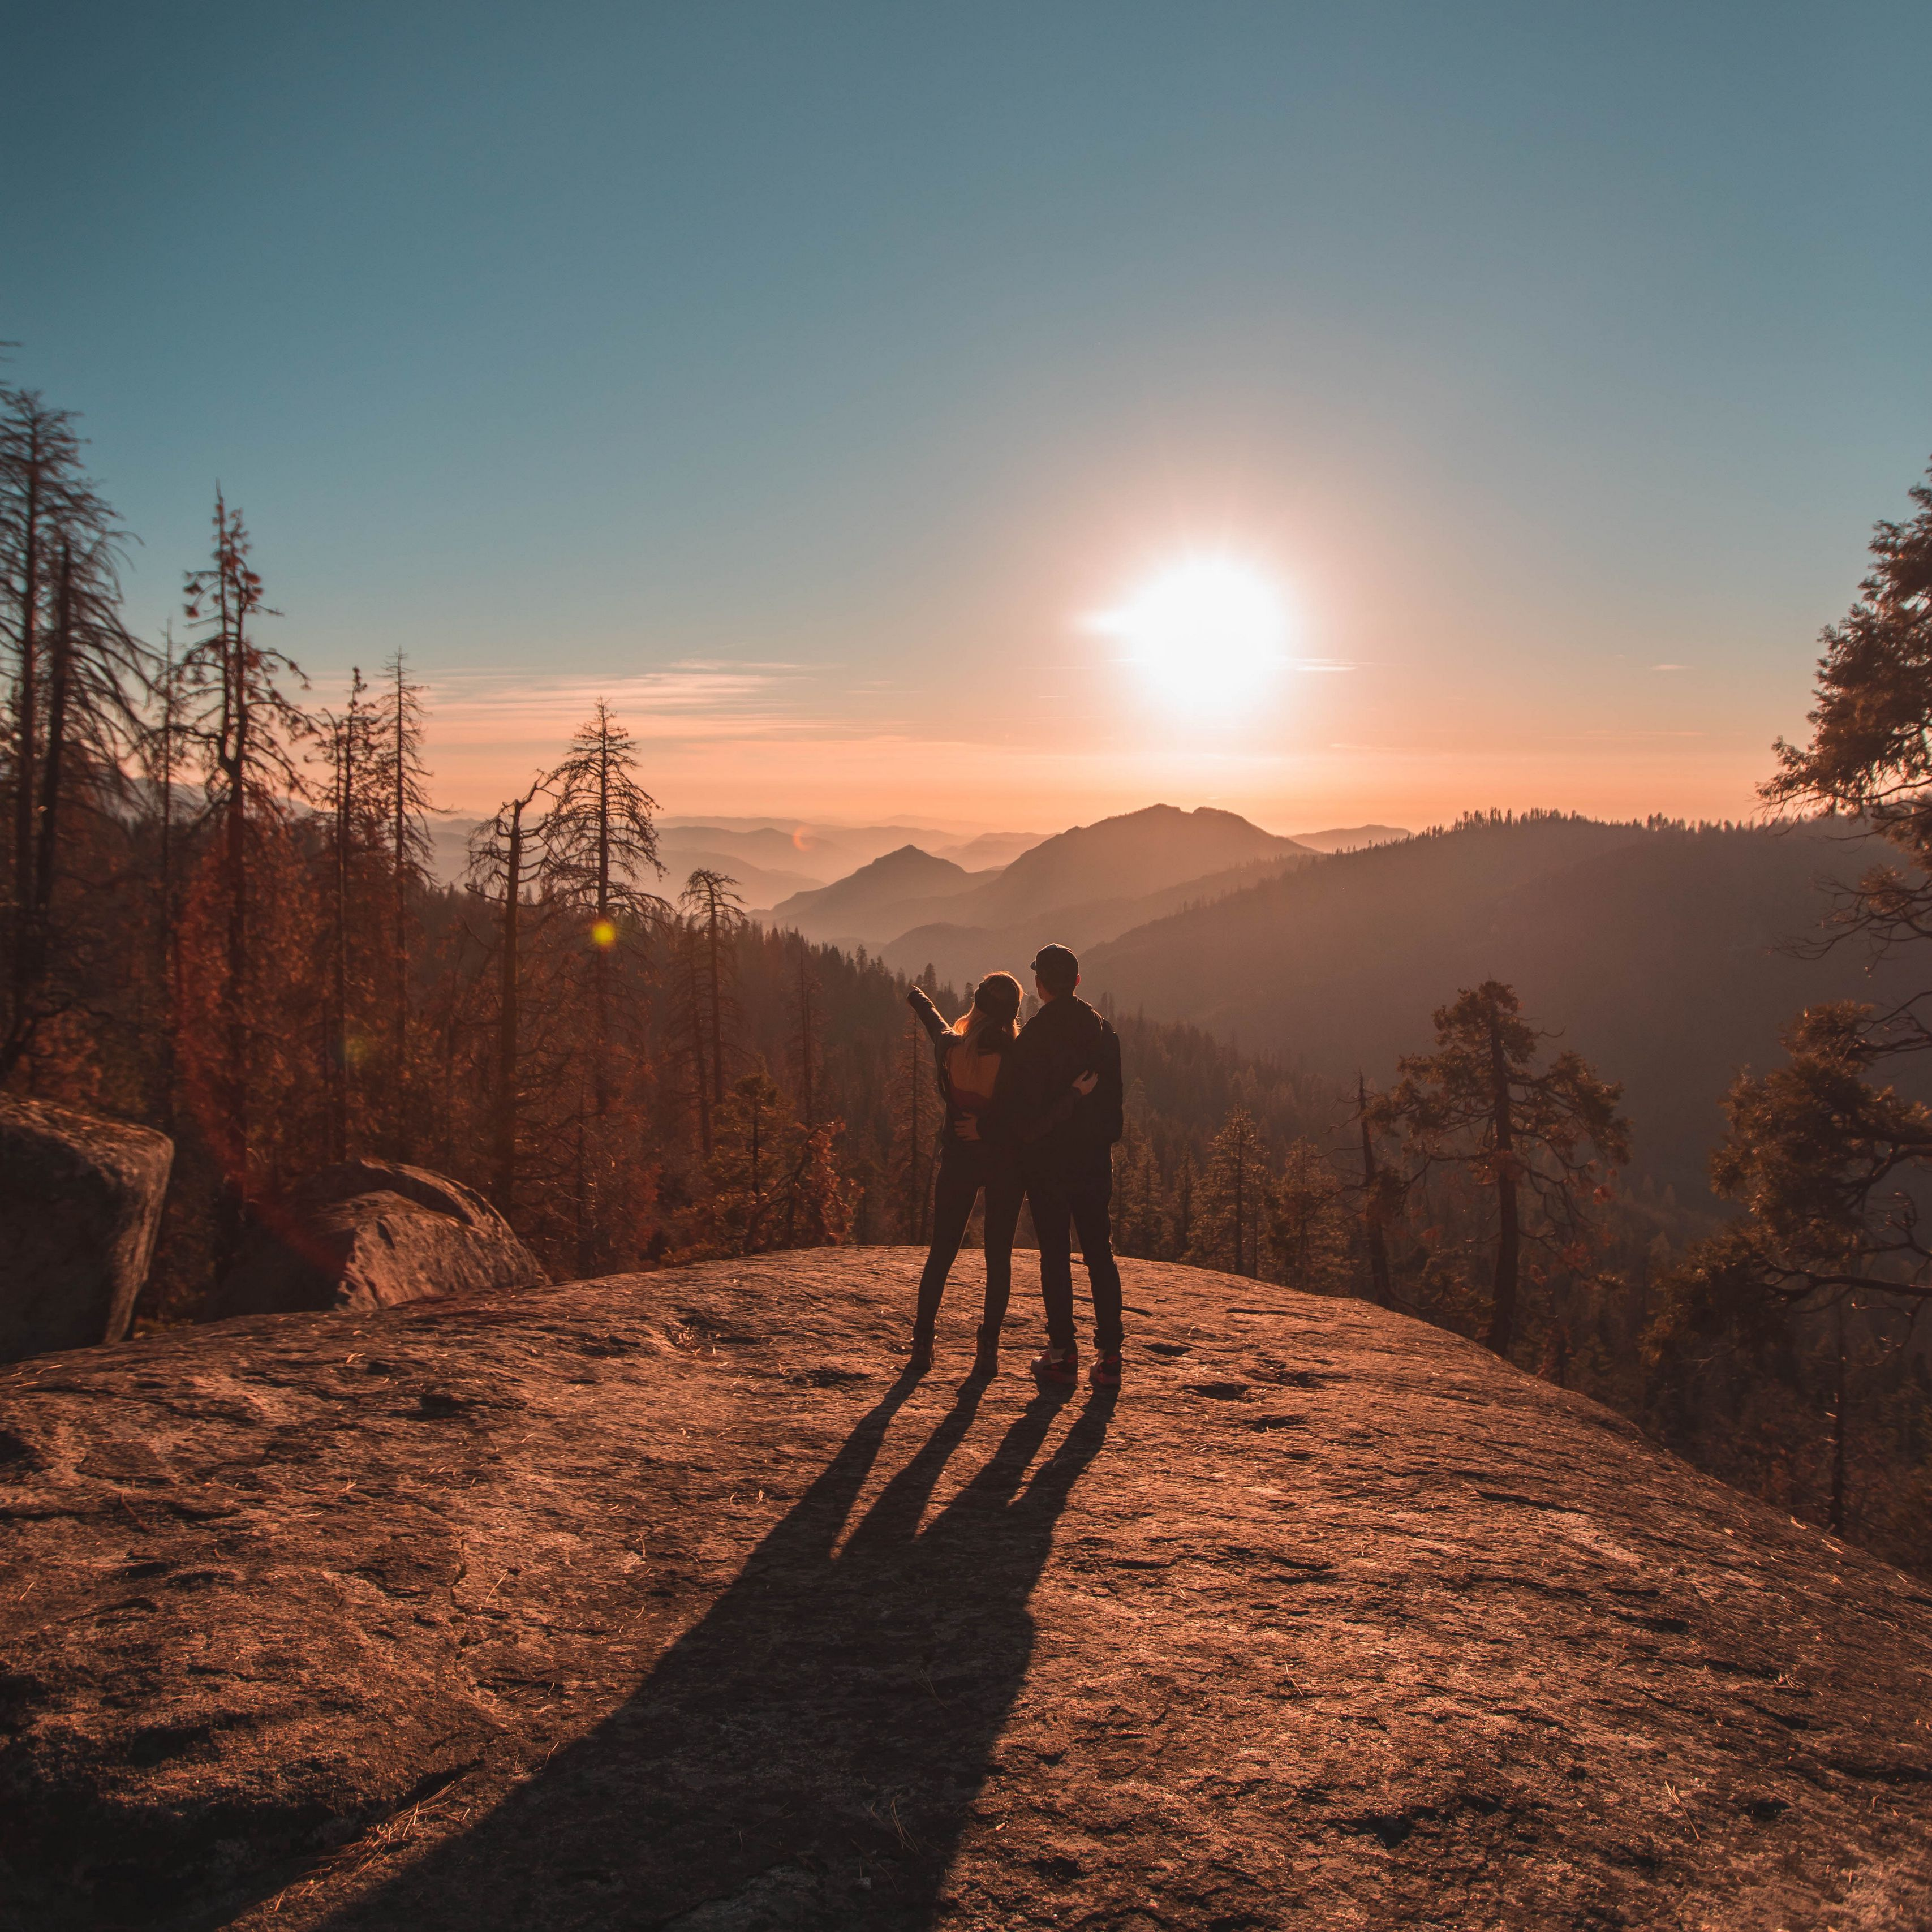 3415x3415 Wallpaper couple, mountains, travel, sunset, sequoia national park, united states